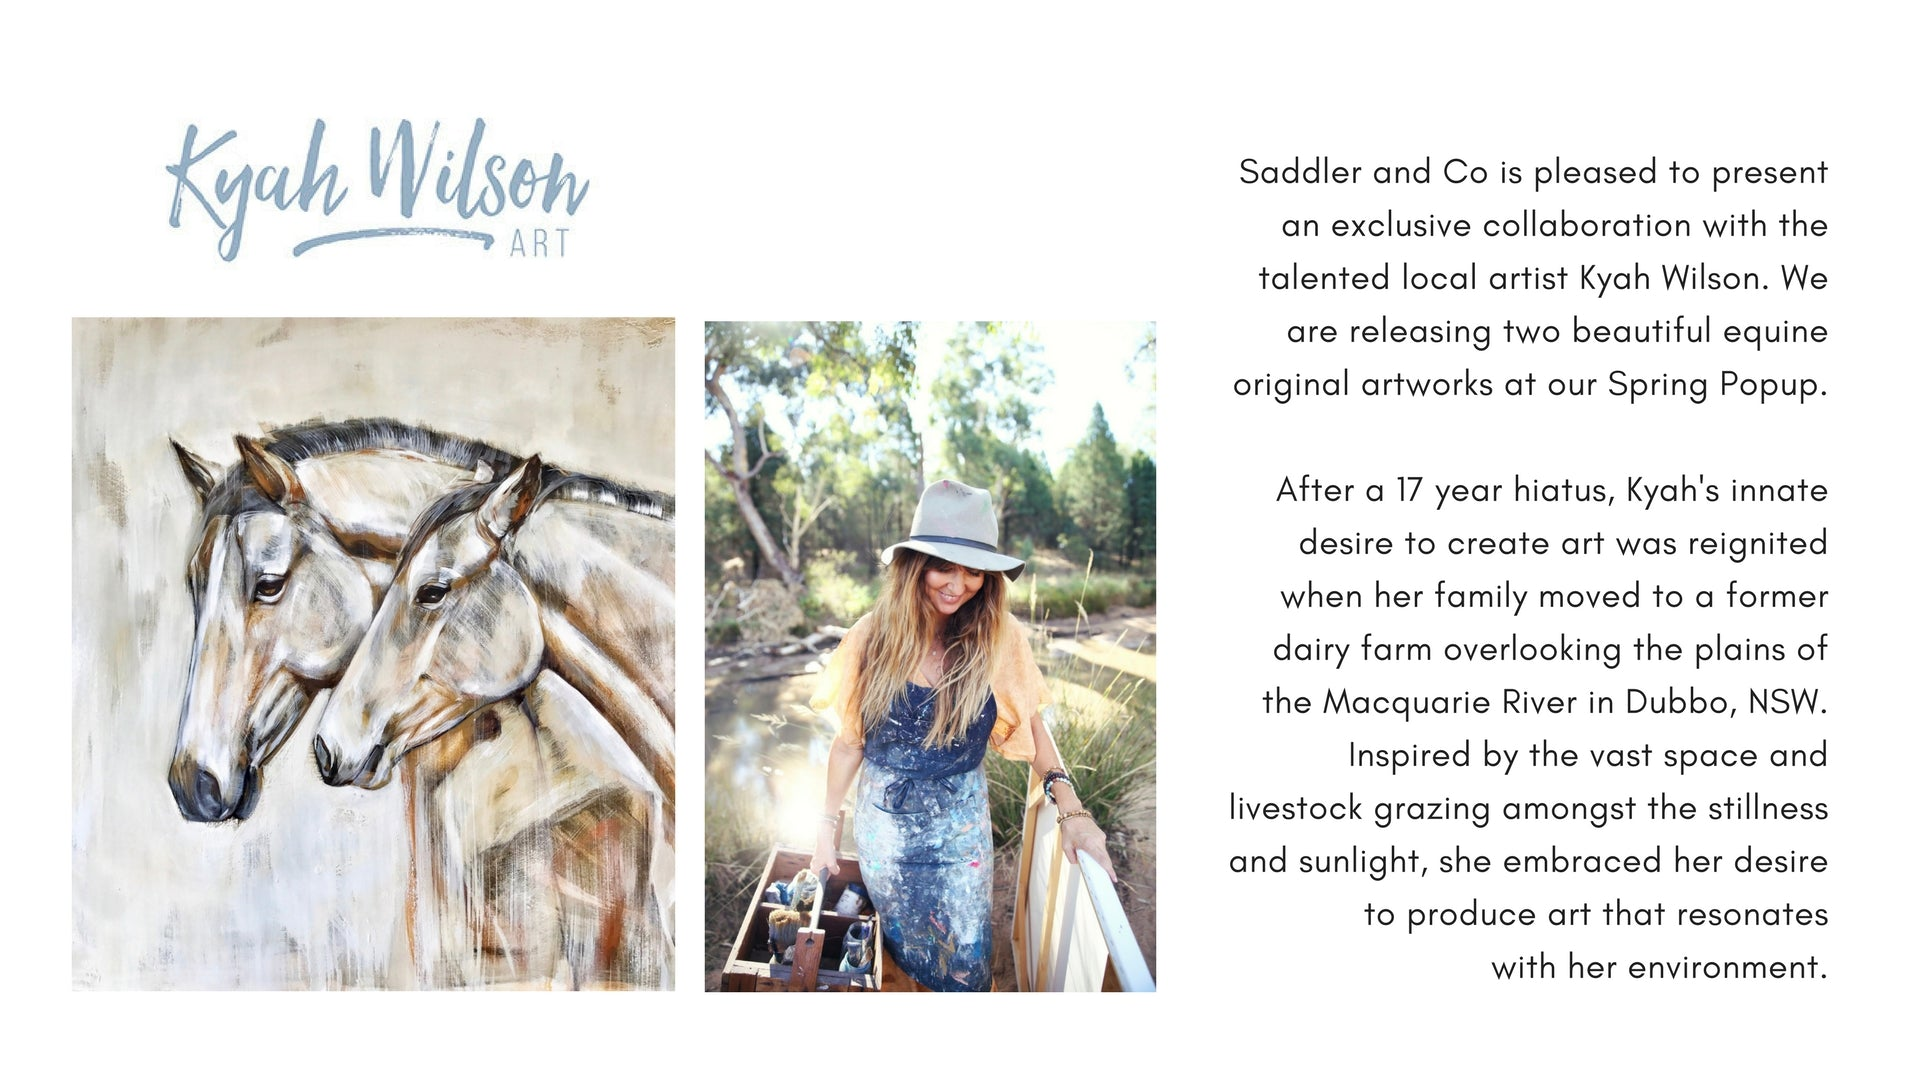 Kyah Wilson presented by Saddler & Co